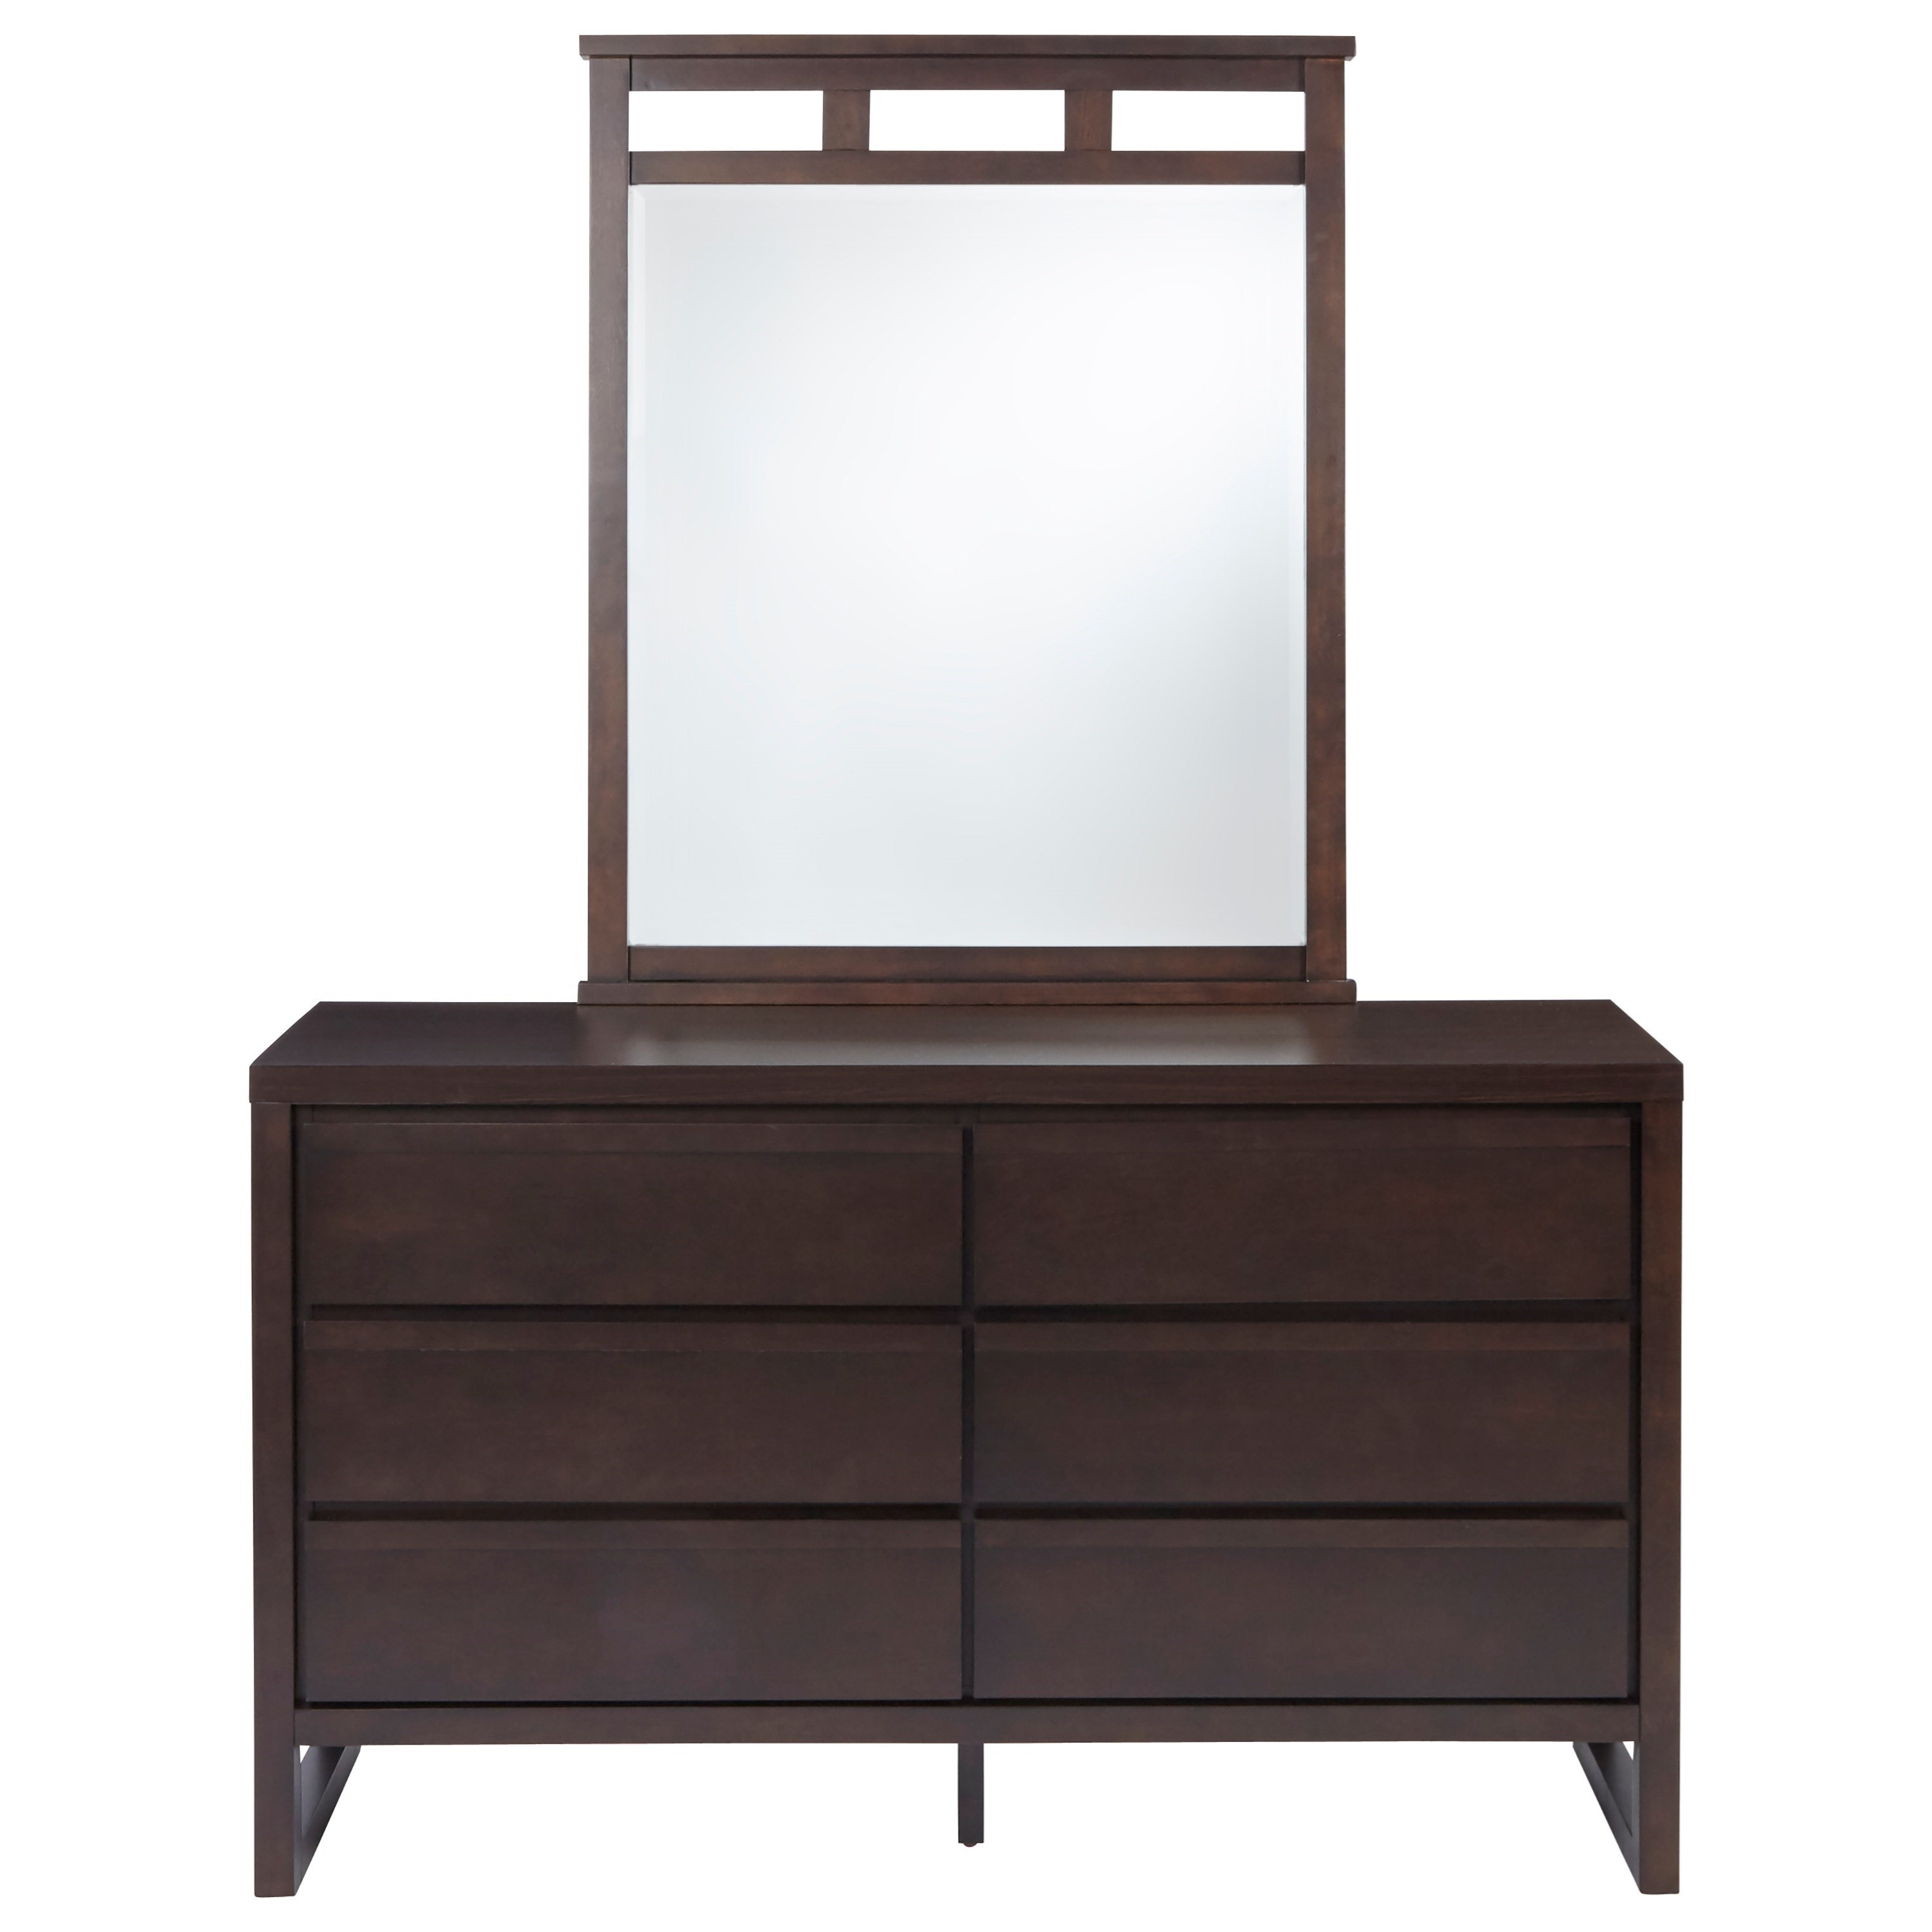 Athena Drawer Dresser and Mirror by Progressive Furniture at Value City Furniture